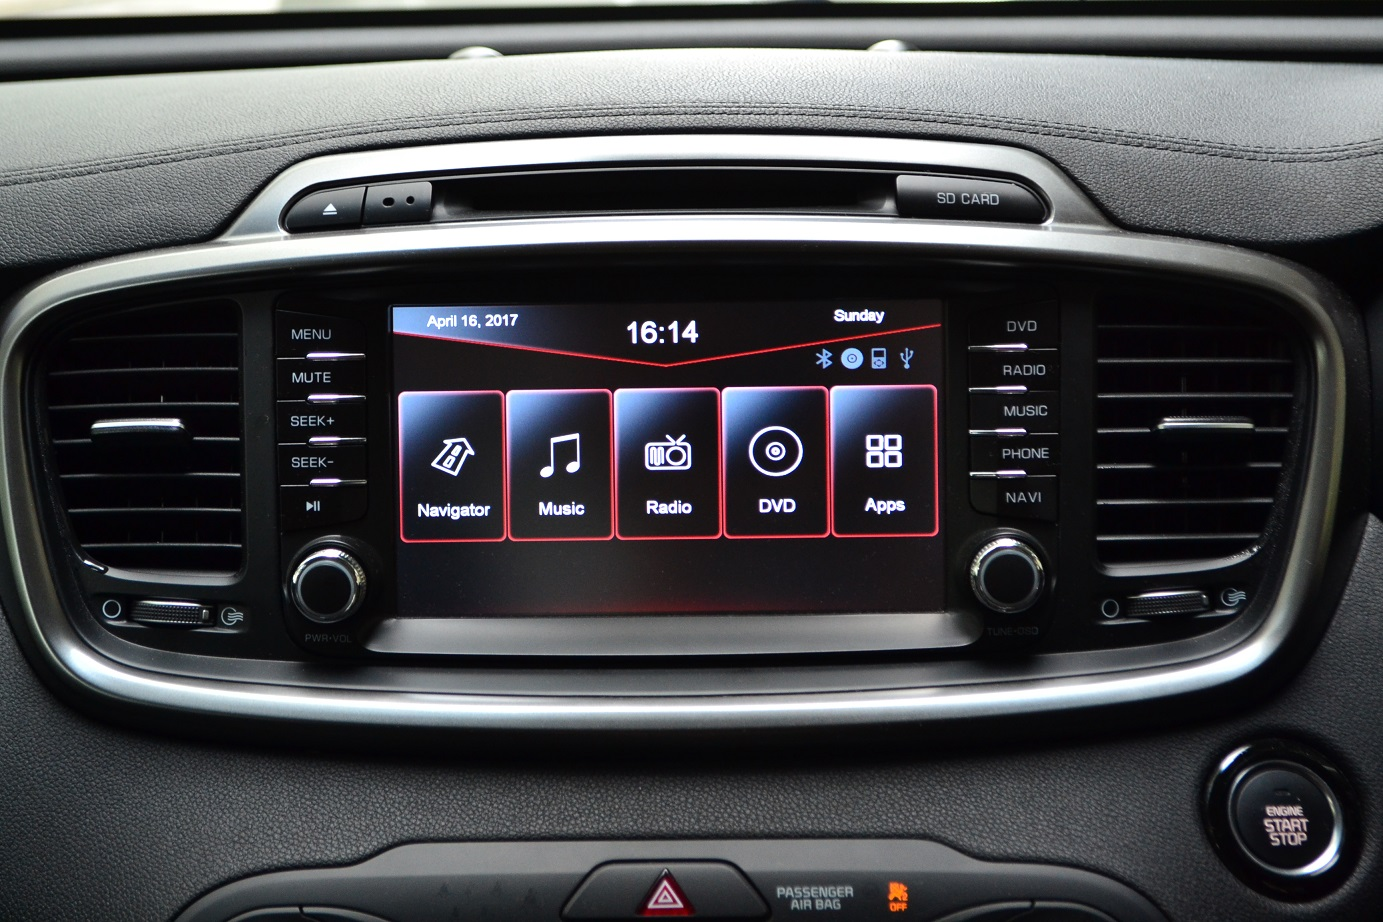 hight resolution of as far as touchscreen infotainment system goes the carnival s is pathetically small and basic a 4 3 tft touchscreen doesn t really cut it for a cabin as